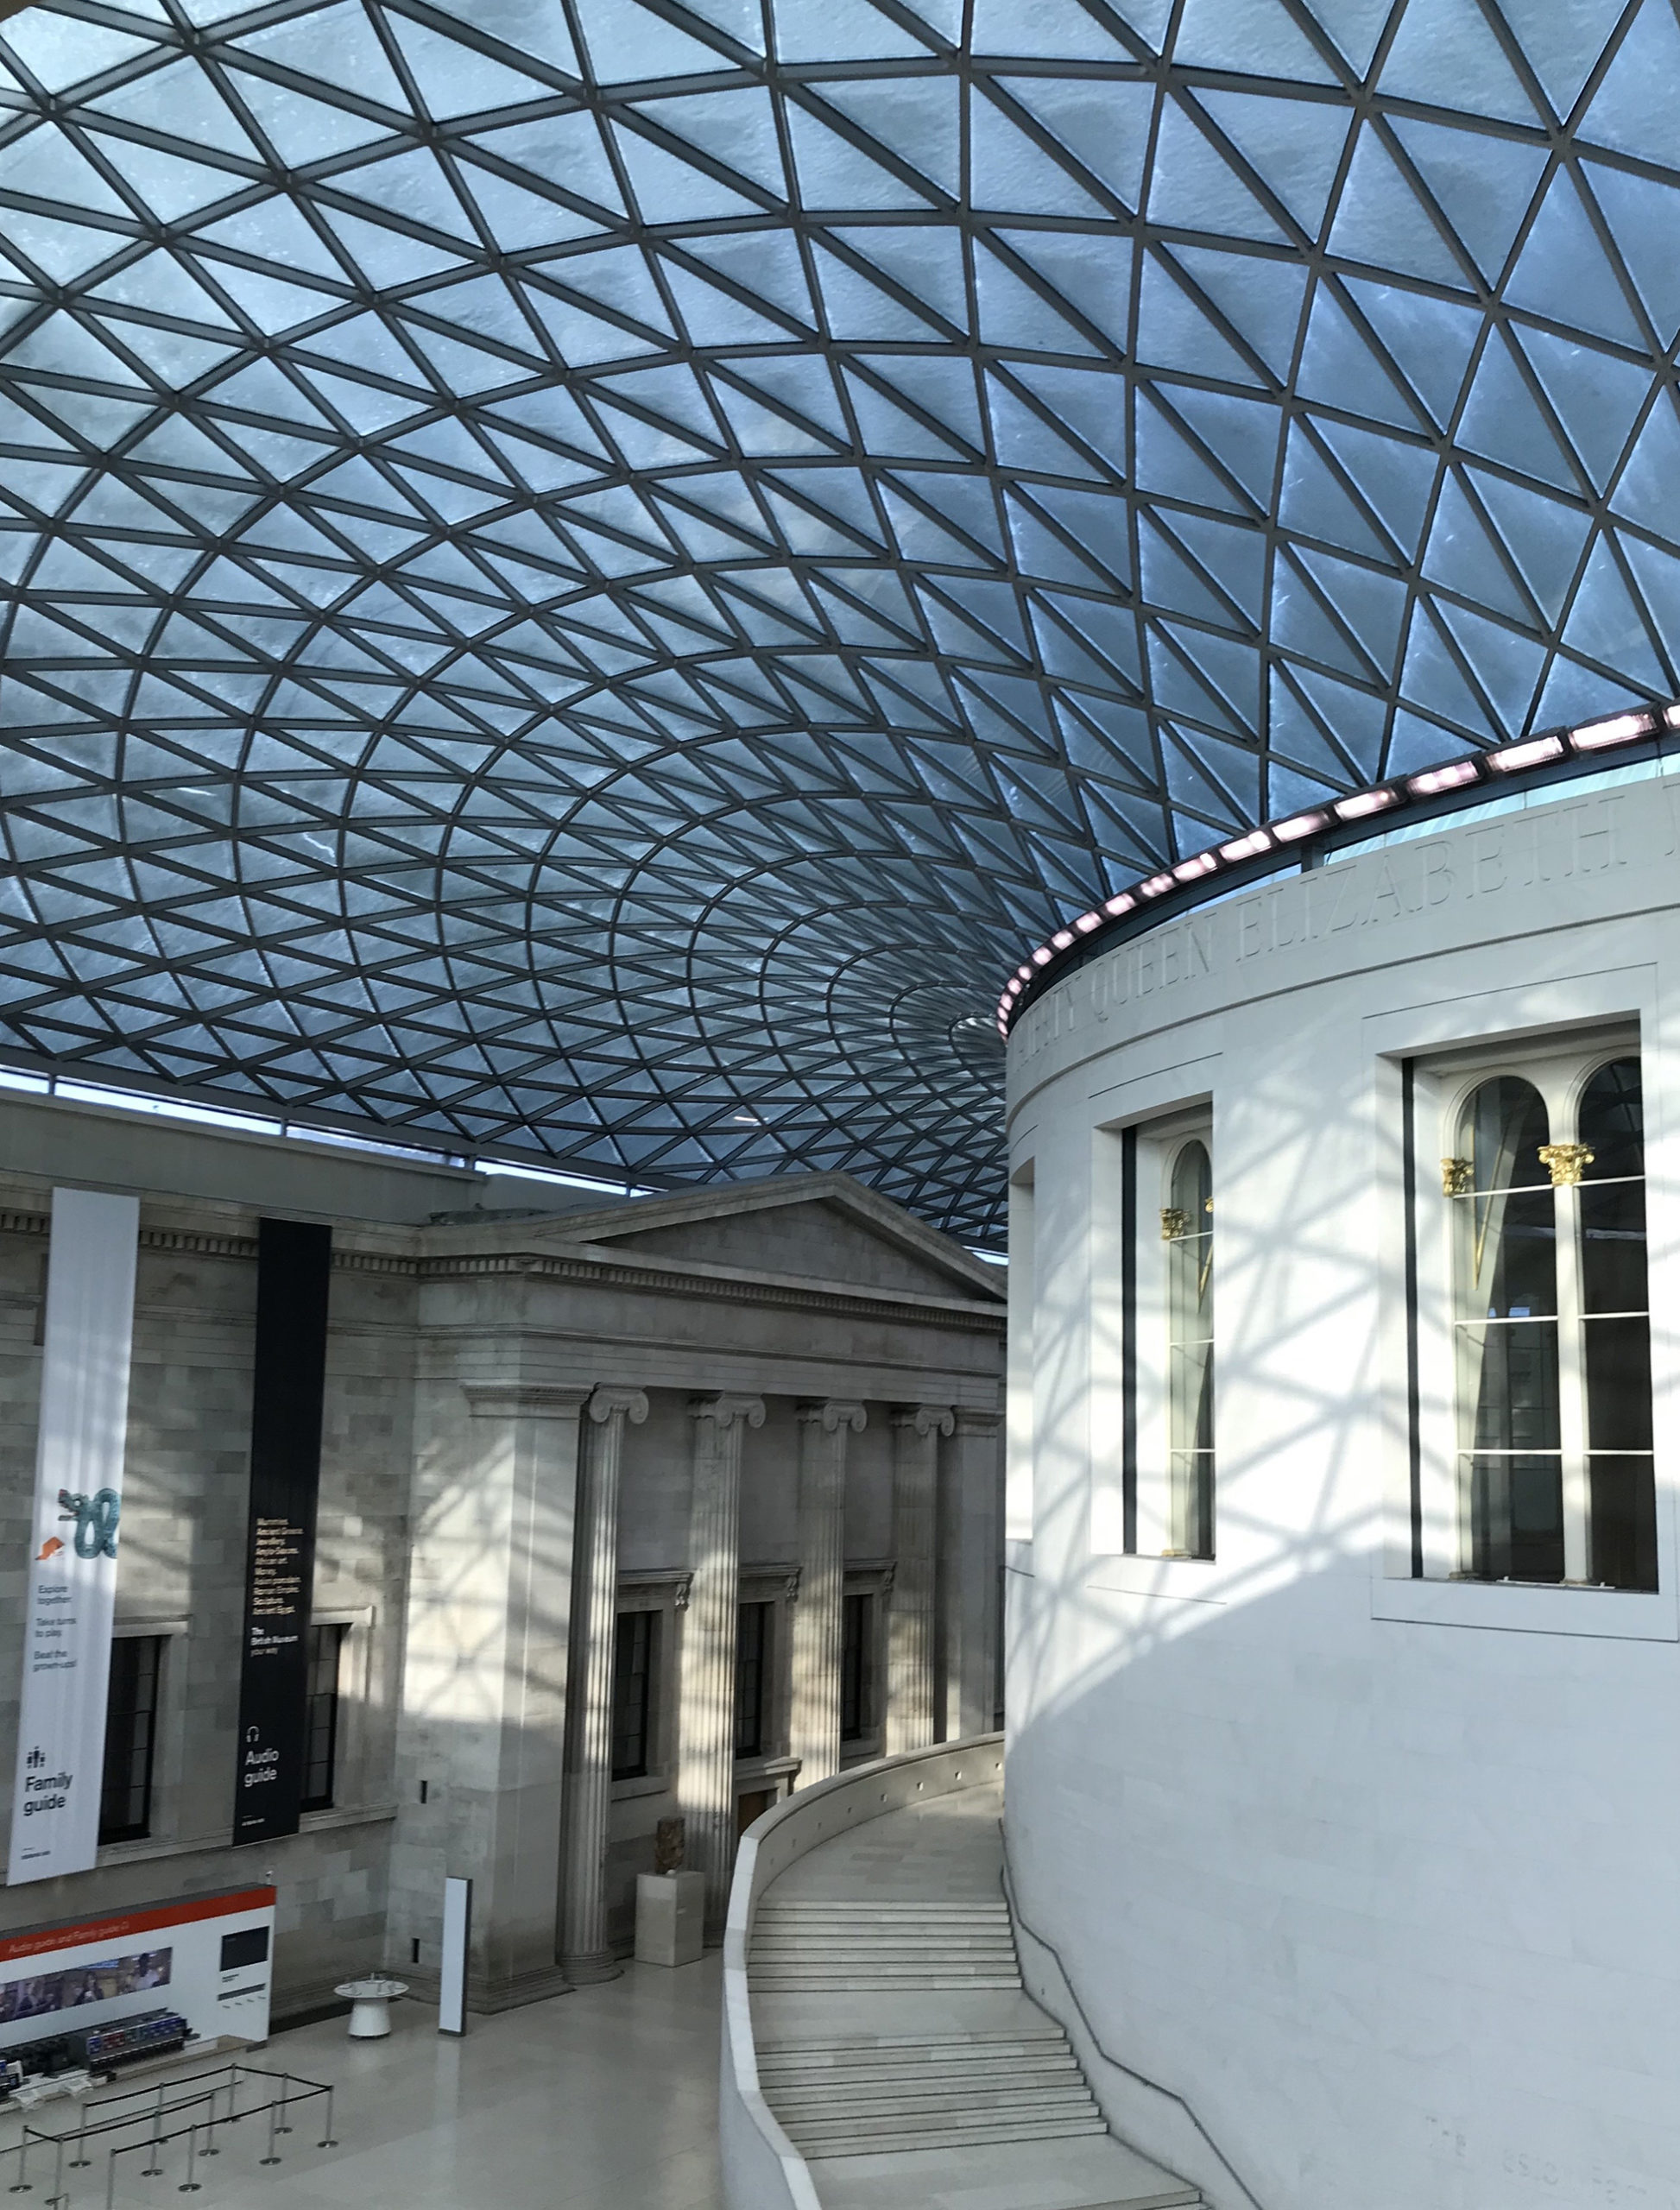 Snow which has settled on the glass panels of the Great Court, making them dark and patchy, and the floodlights encircling with Round Reading Room shining onto the space below.